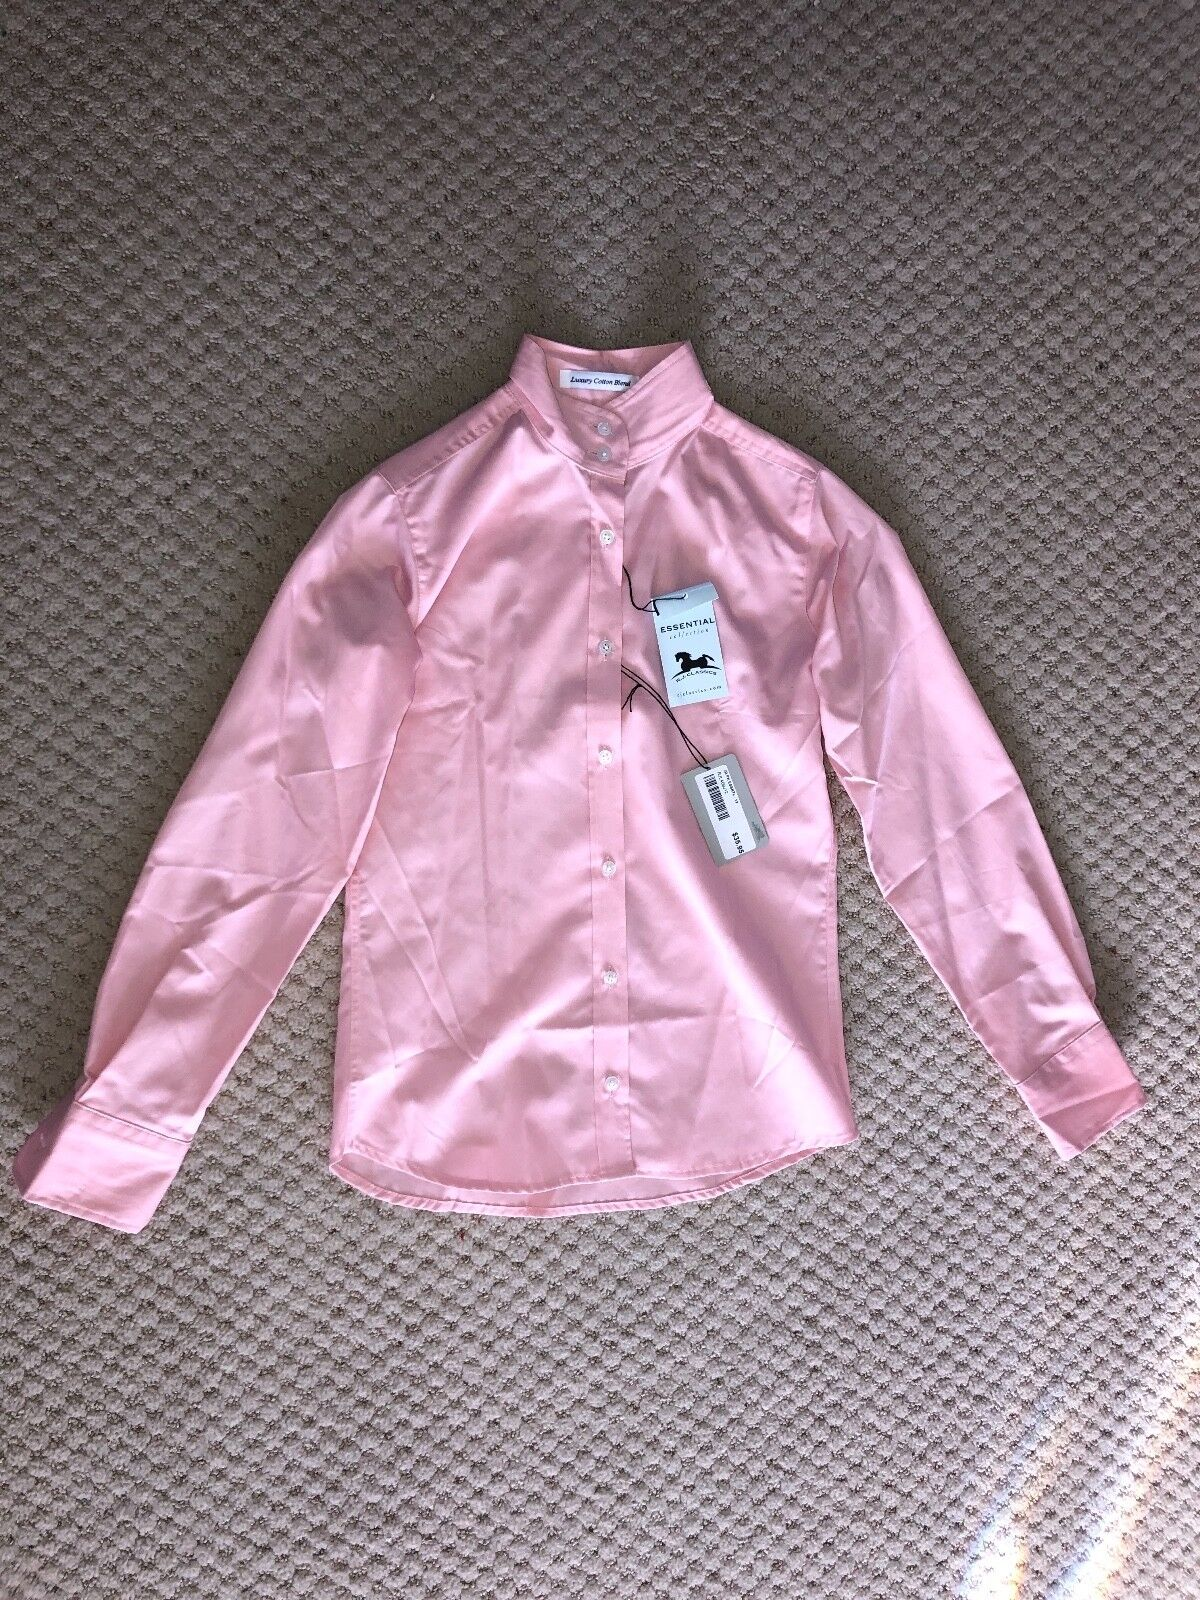 R.J.Classics  Essential collection pink show shirt size 12  zero profit